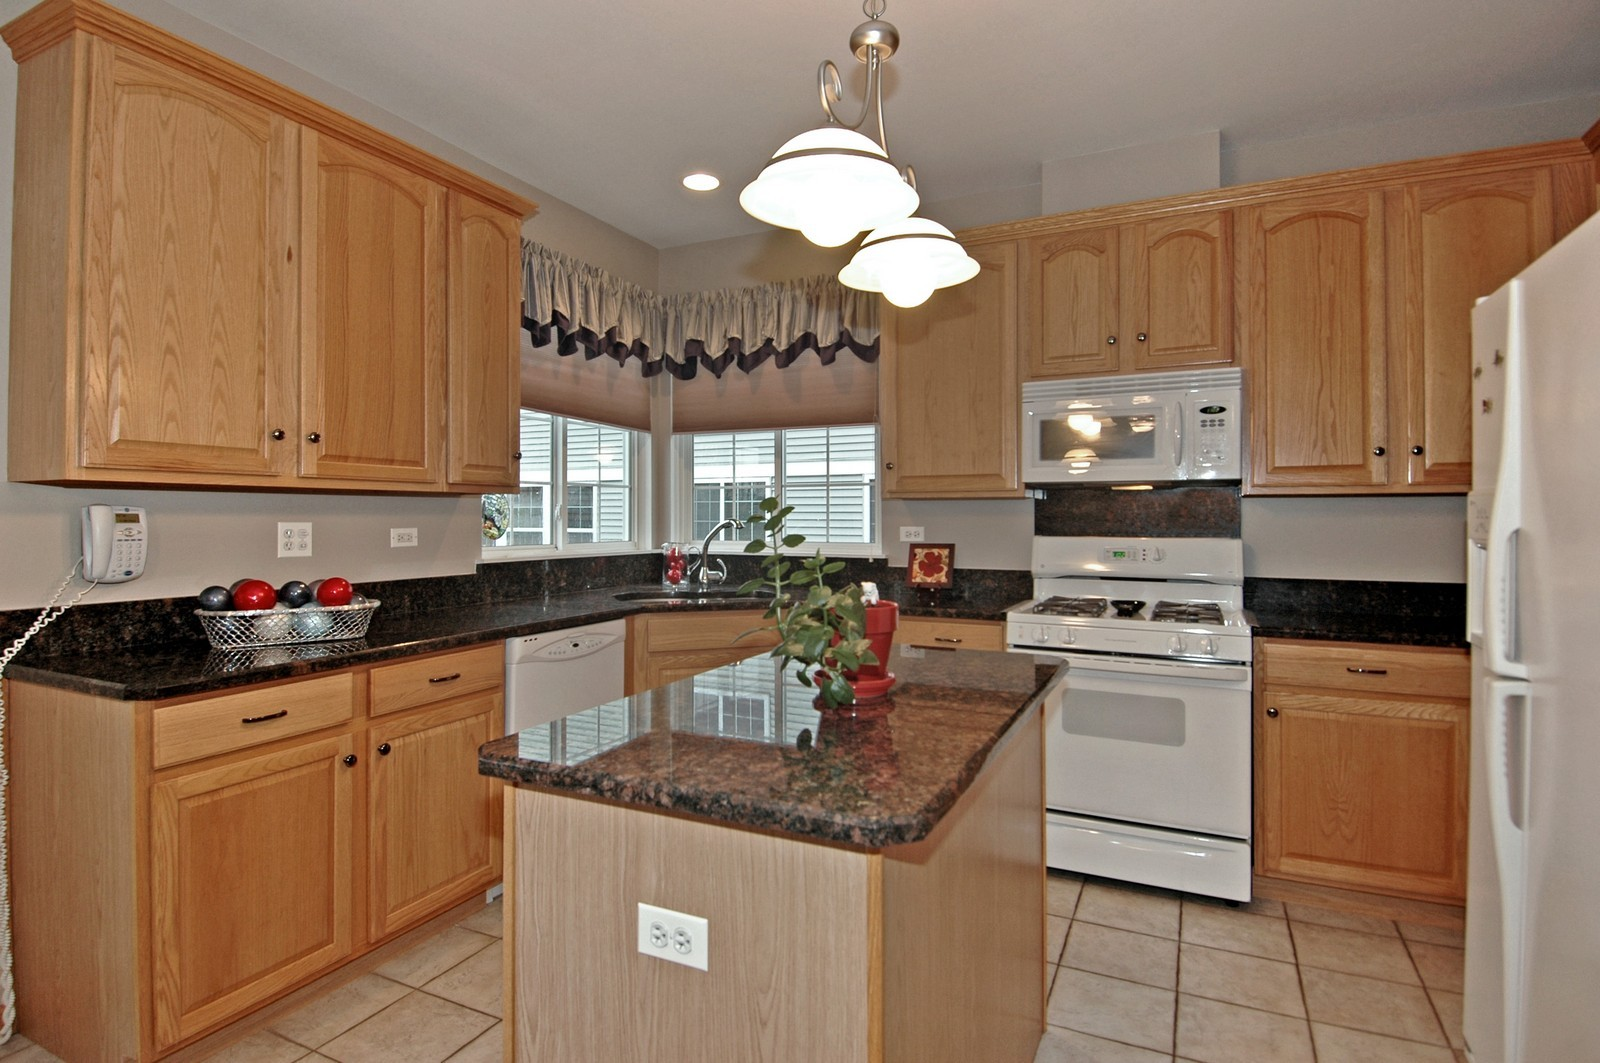 Real Estate Photography - 10943 Concord, Huntley, IL, 60142 - Kitchen - Full View